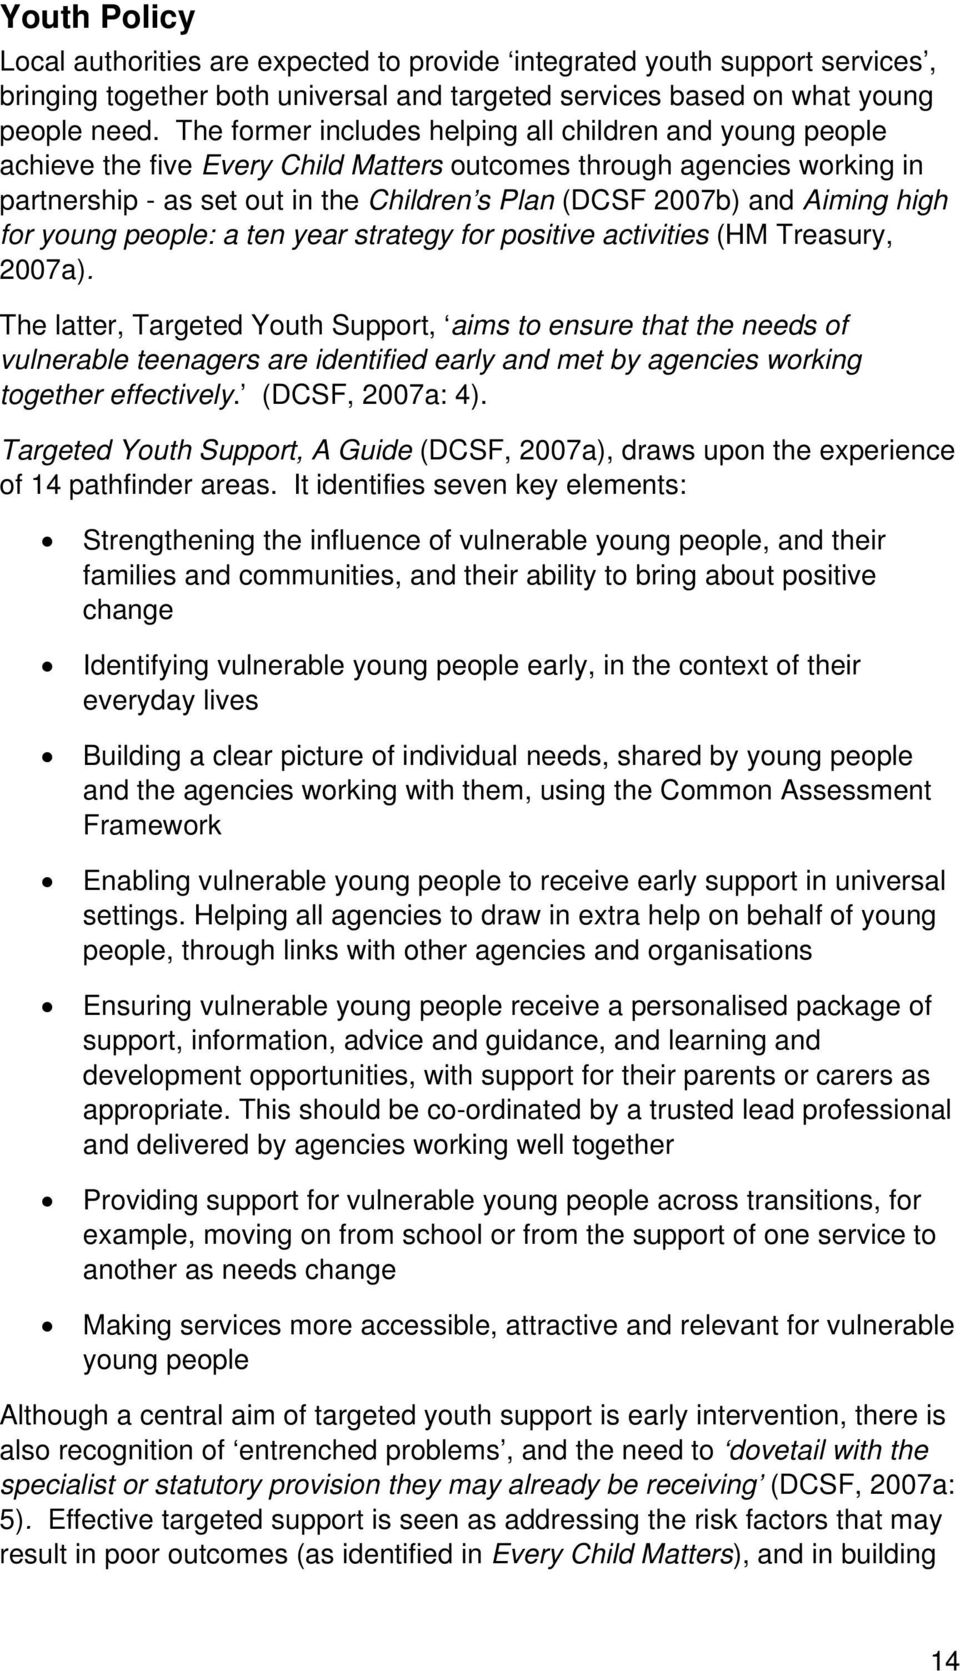 Aiming high for young people: a ten year strategy for positive activities (HM Treasury, 2007a).